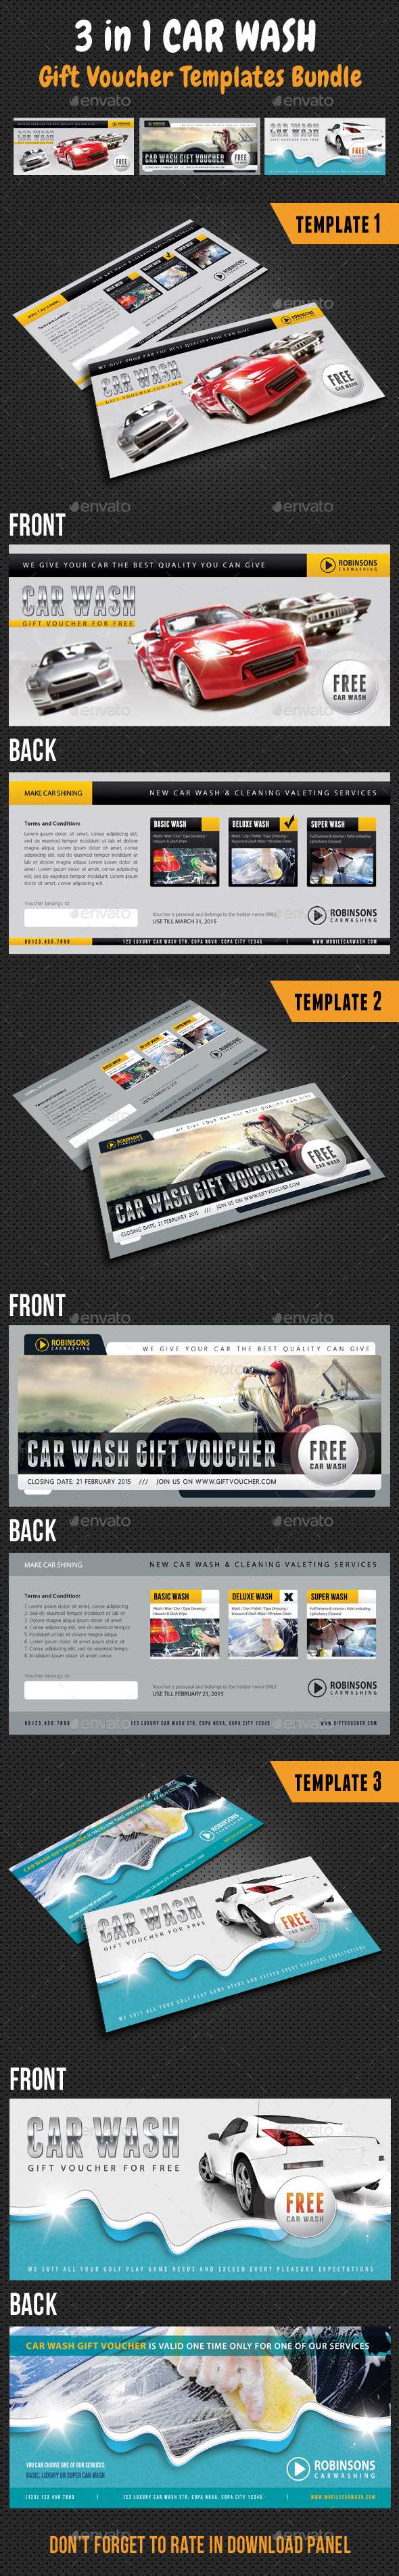 GraphicRiver 3 in 1 Car Wash Gift Voucher Bundle 10530559